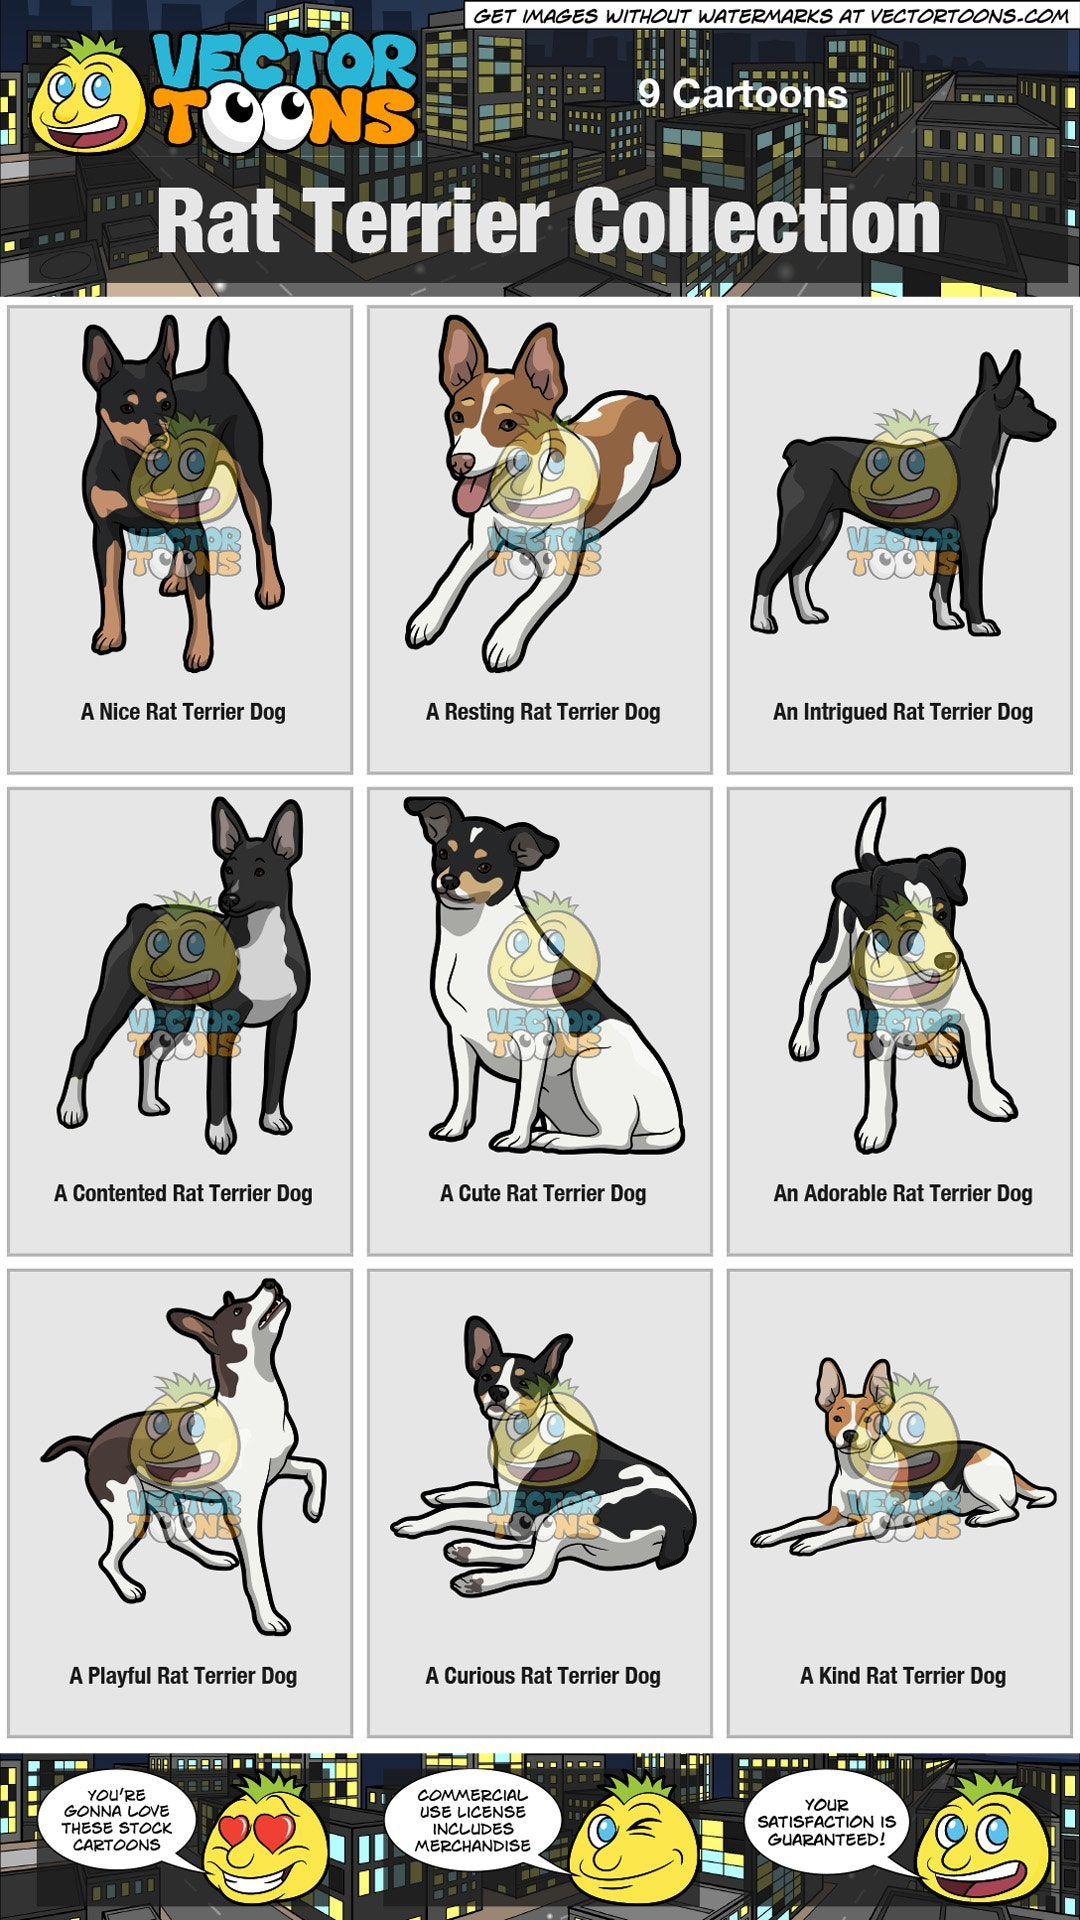 Rat Terrier Collection